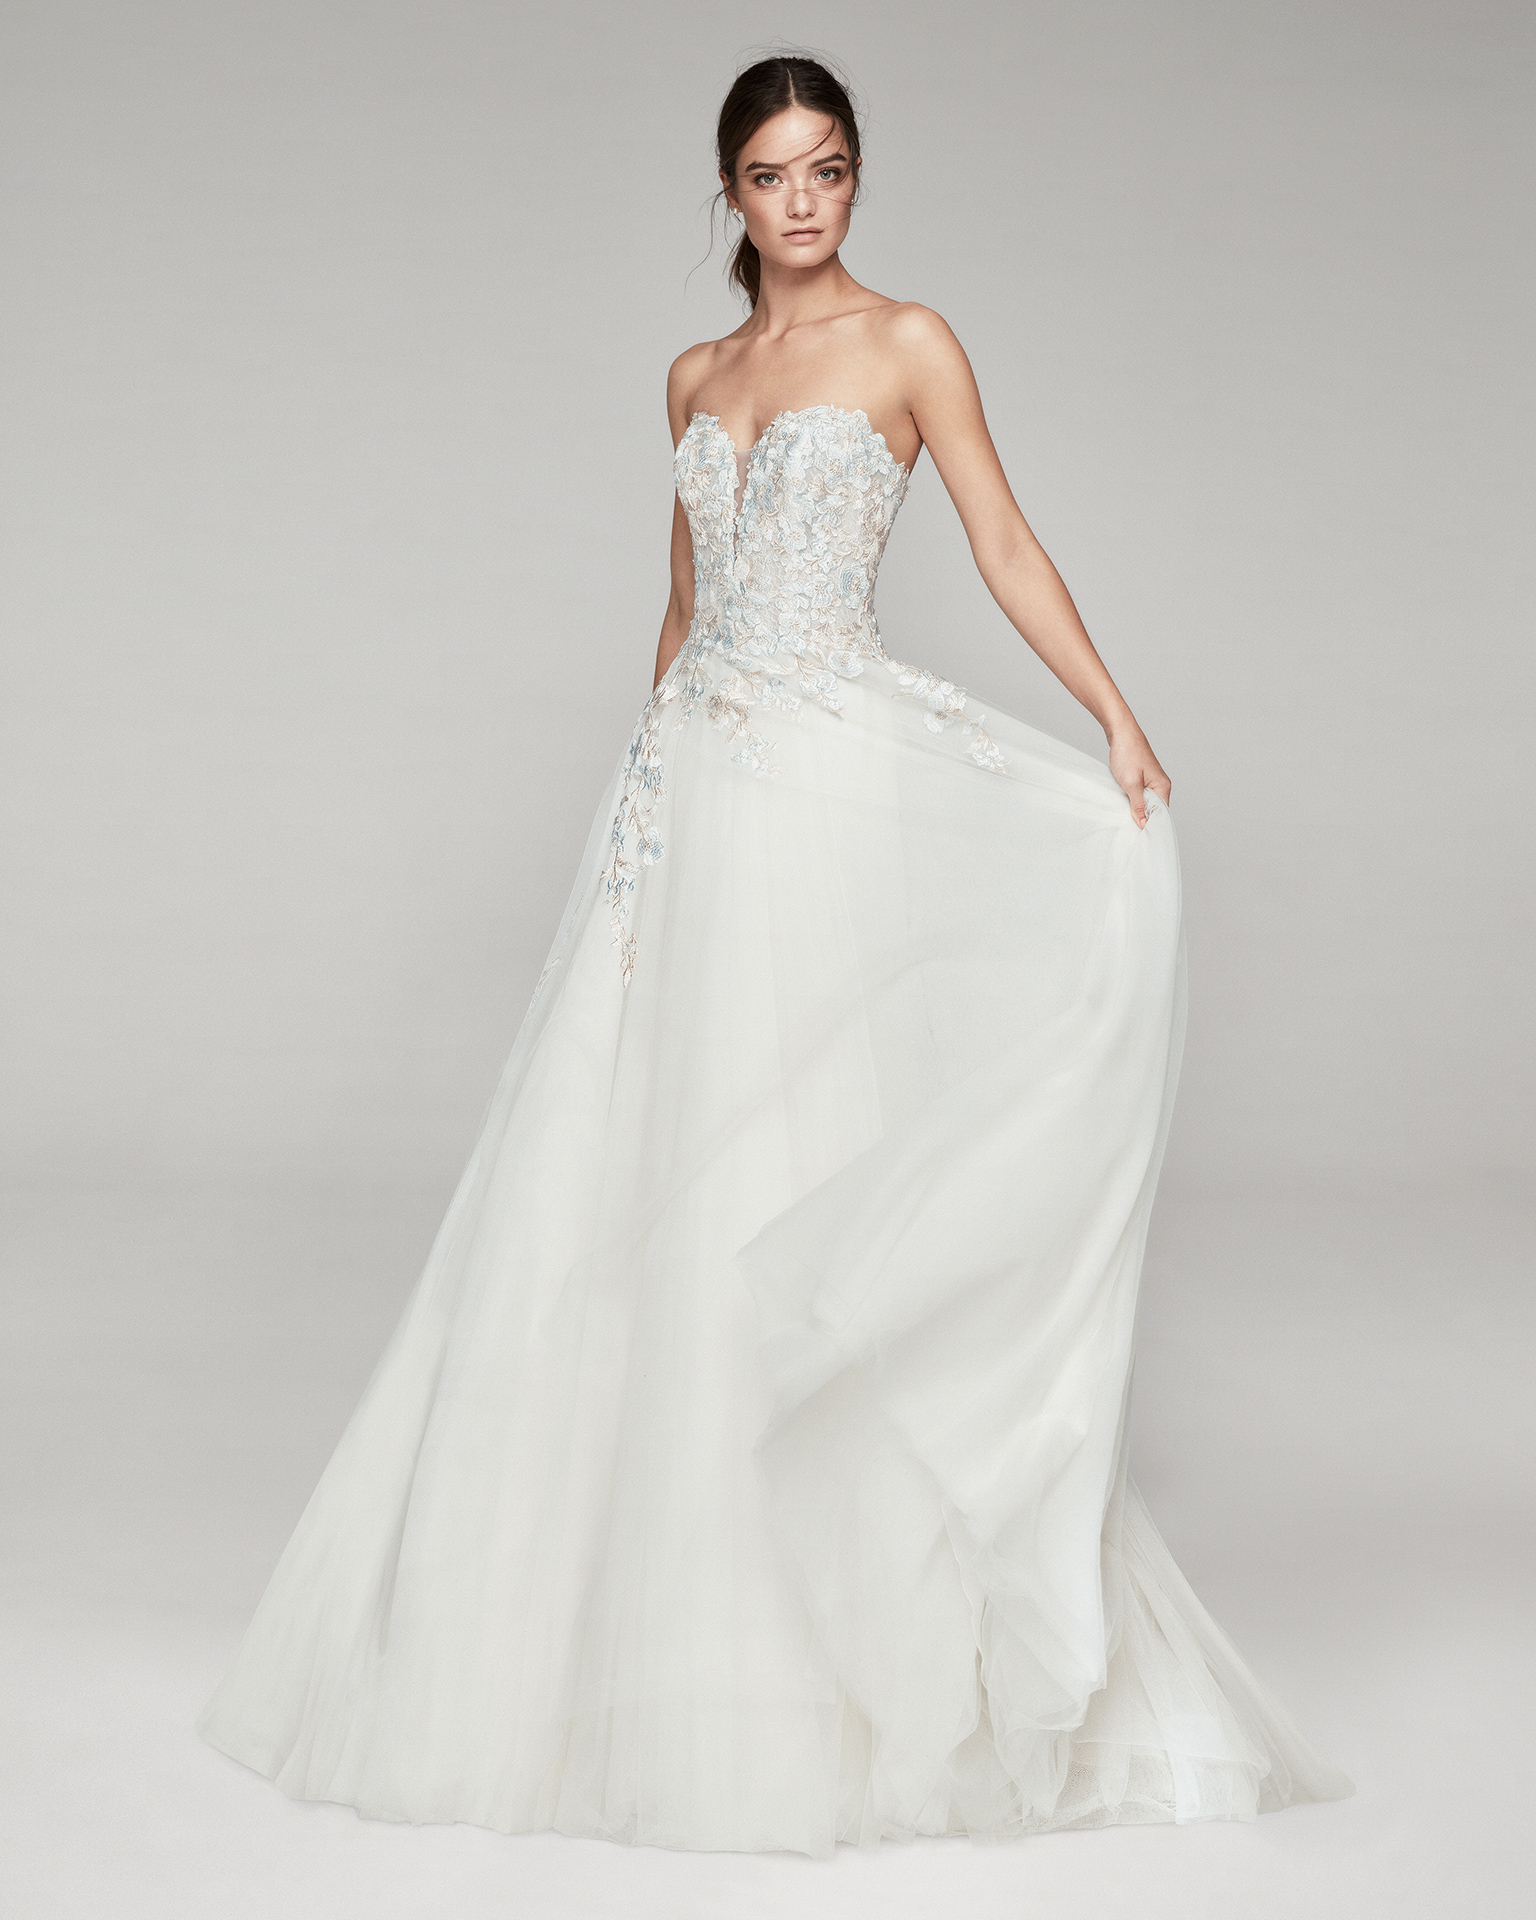 Romantic tulle and lace wedding dress. With strapless neckline. Available in natural/blue and natural. 2019 ALMANOVIA Collection.